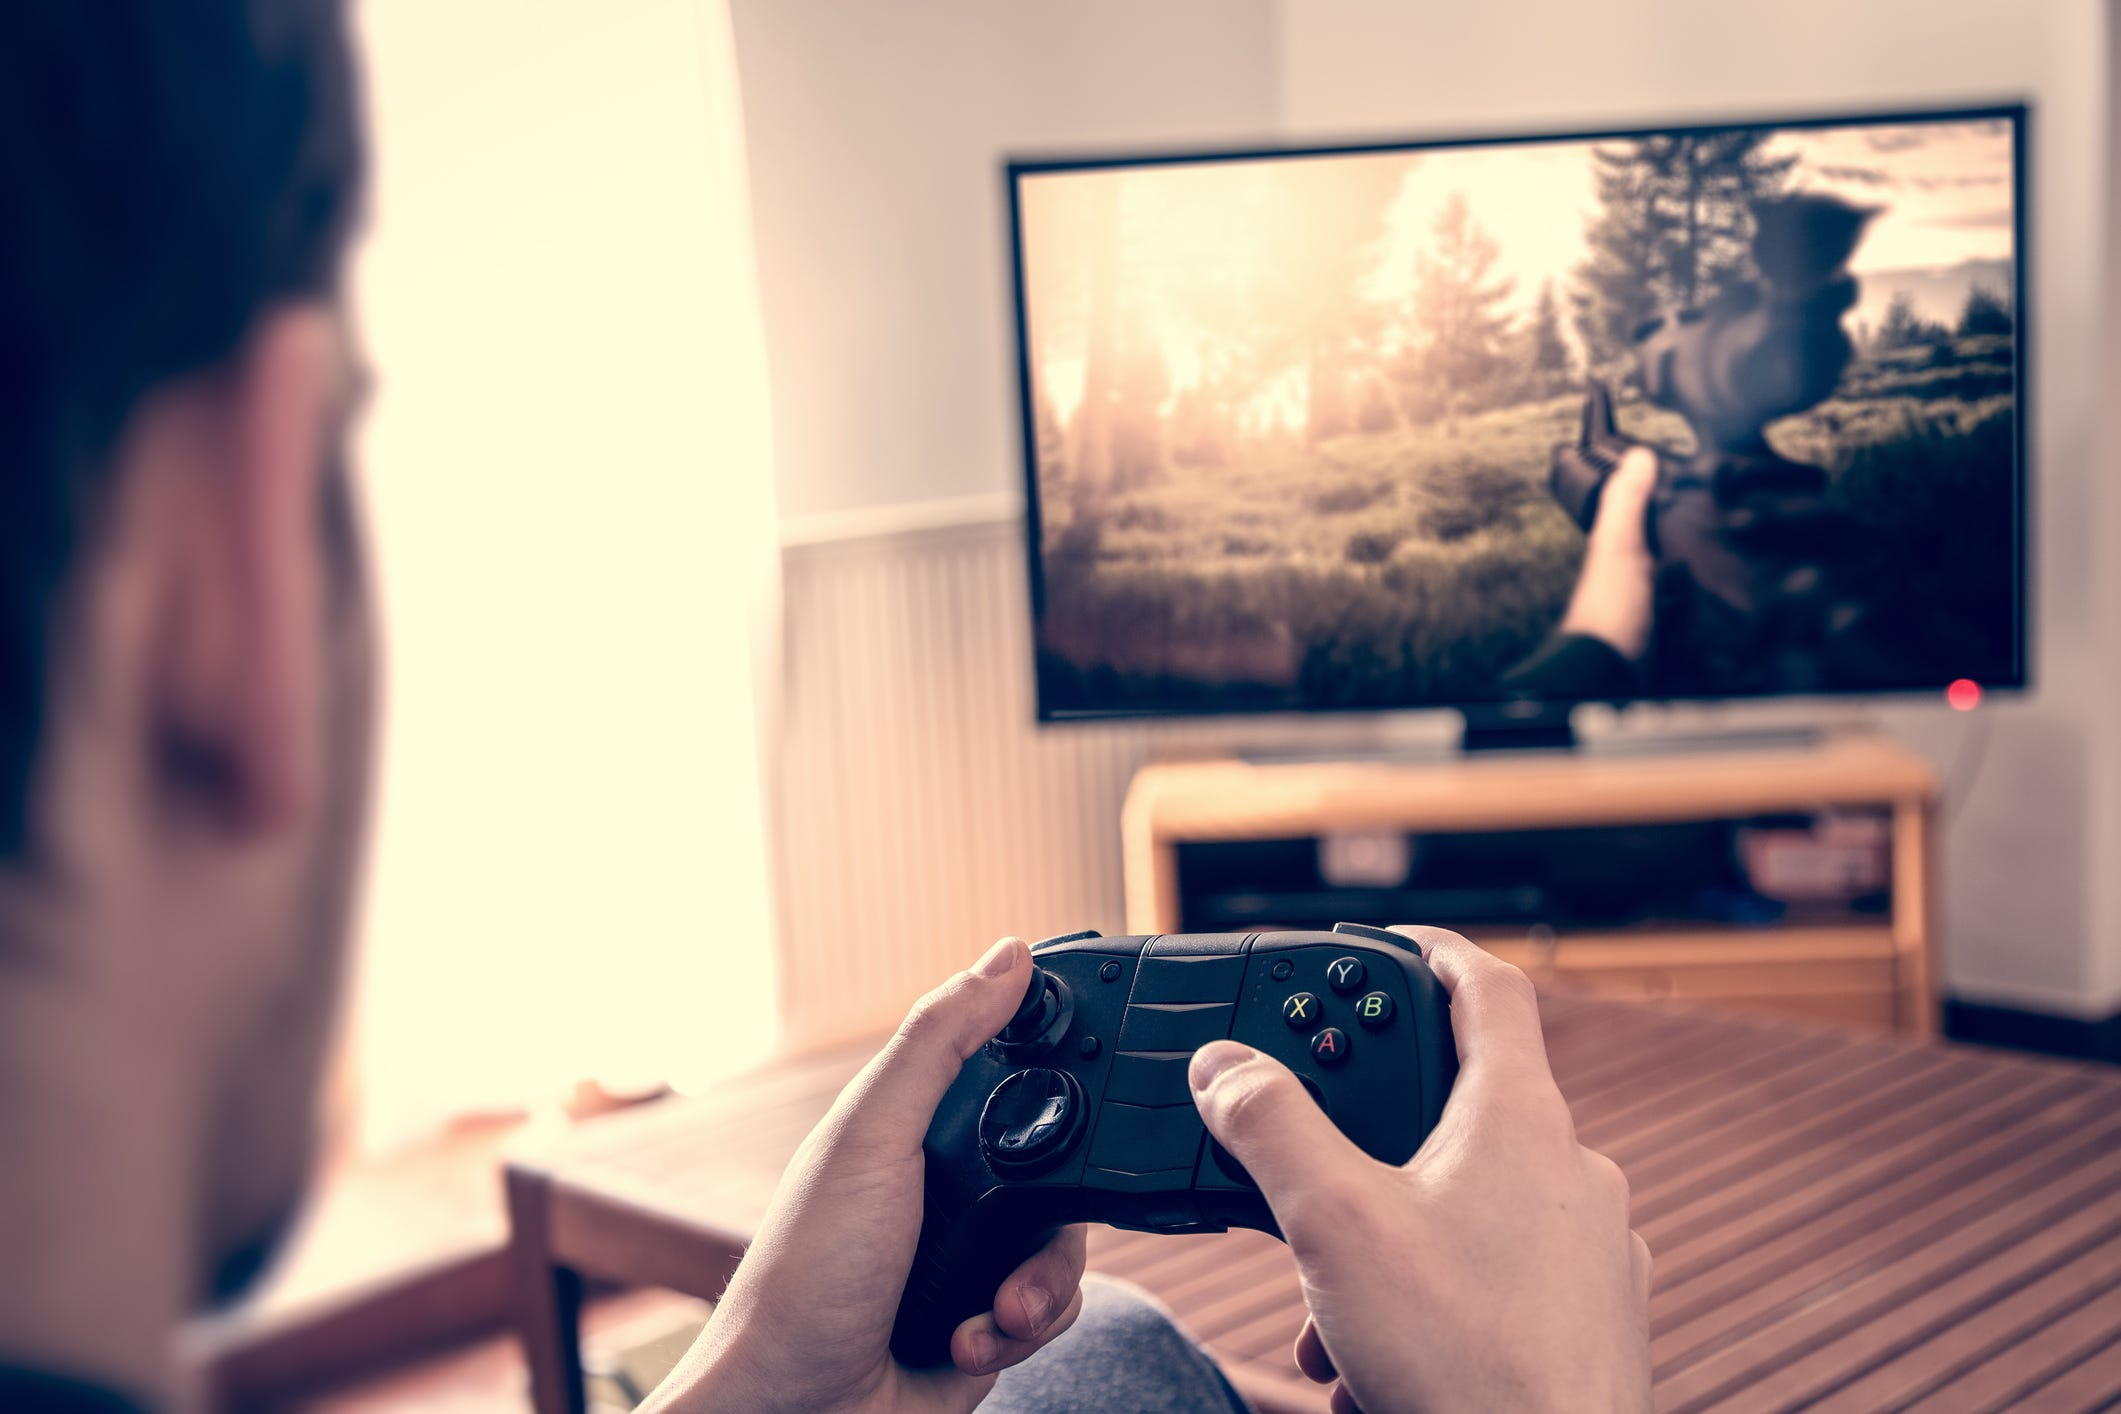 Do violent video games really drive people to commit mass shootings?